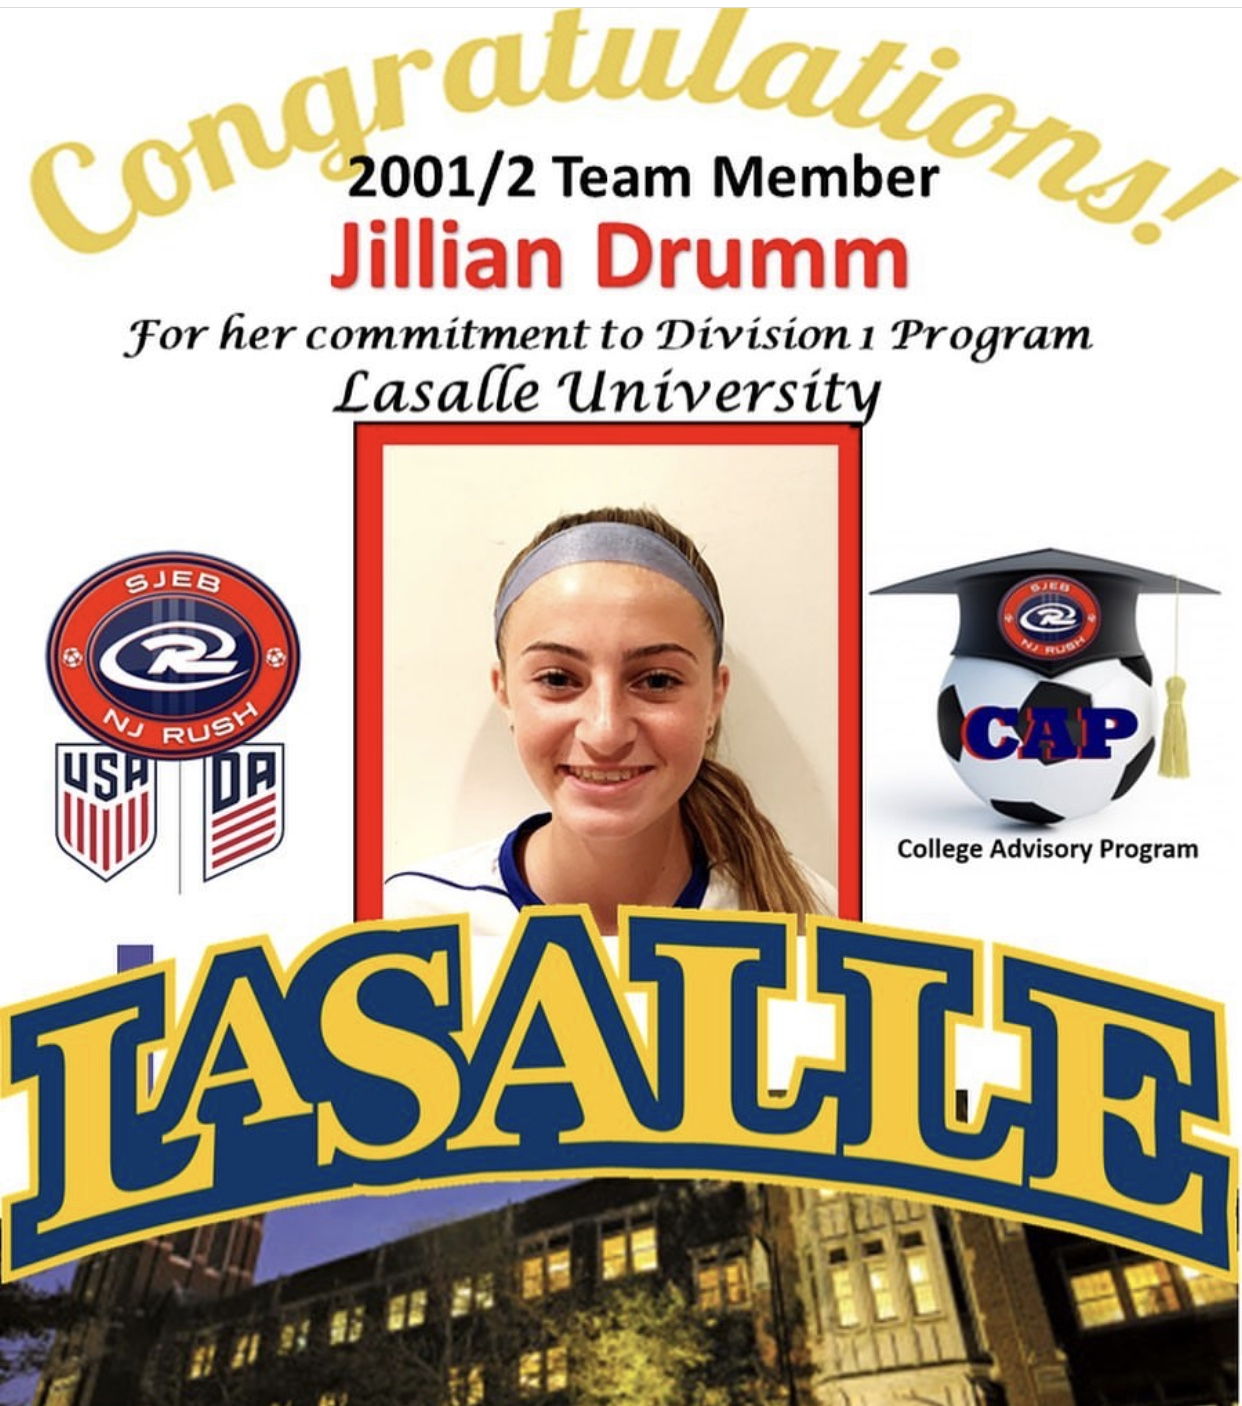 Jillian Drumm cannot wait to play soccer at La Salle University in two years.